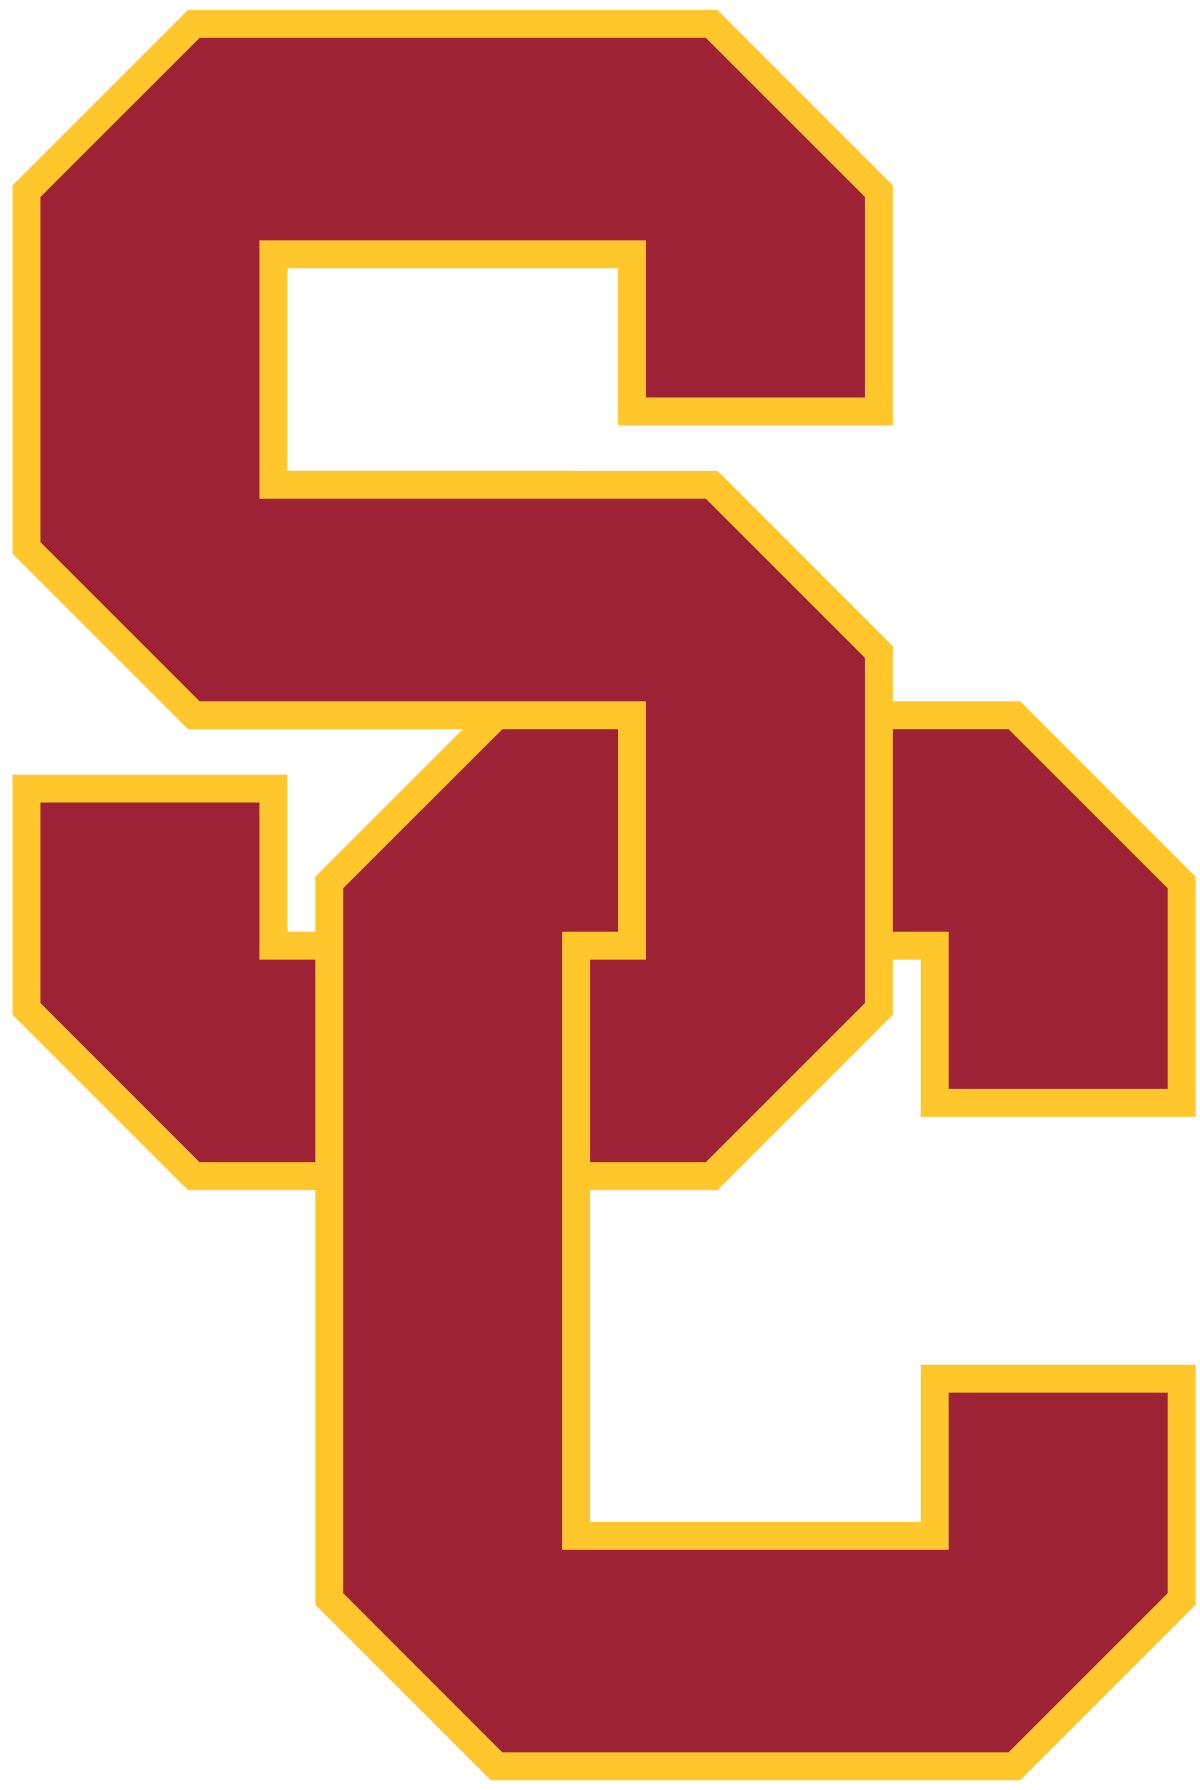 Usc football clipart banner transparent library USC Trojans - Wikipedia banner transparent library